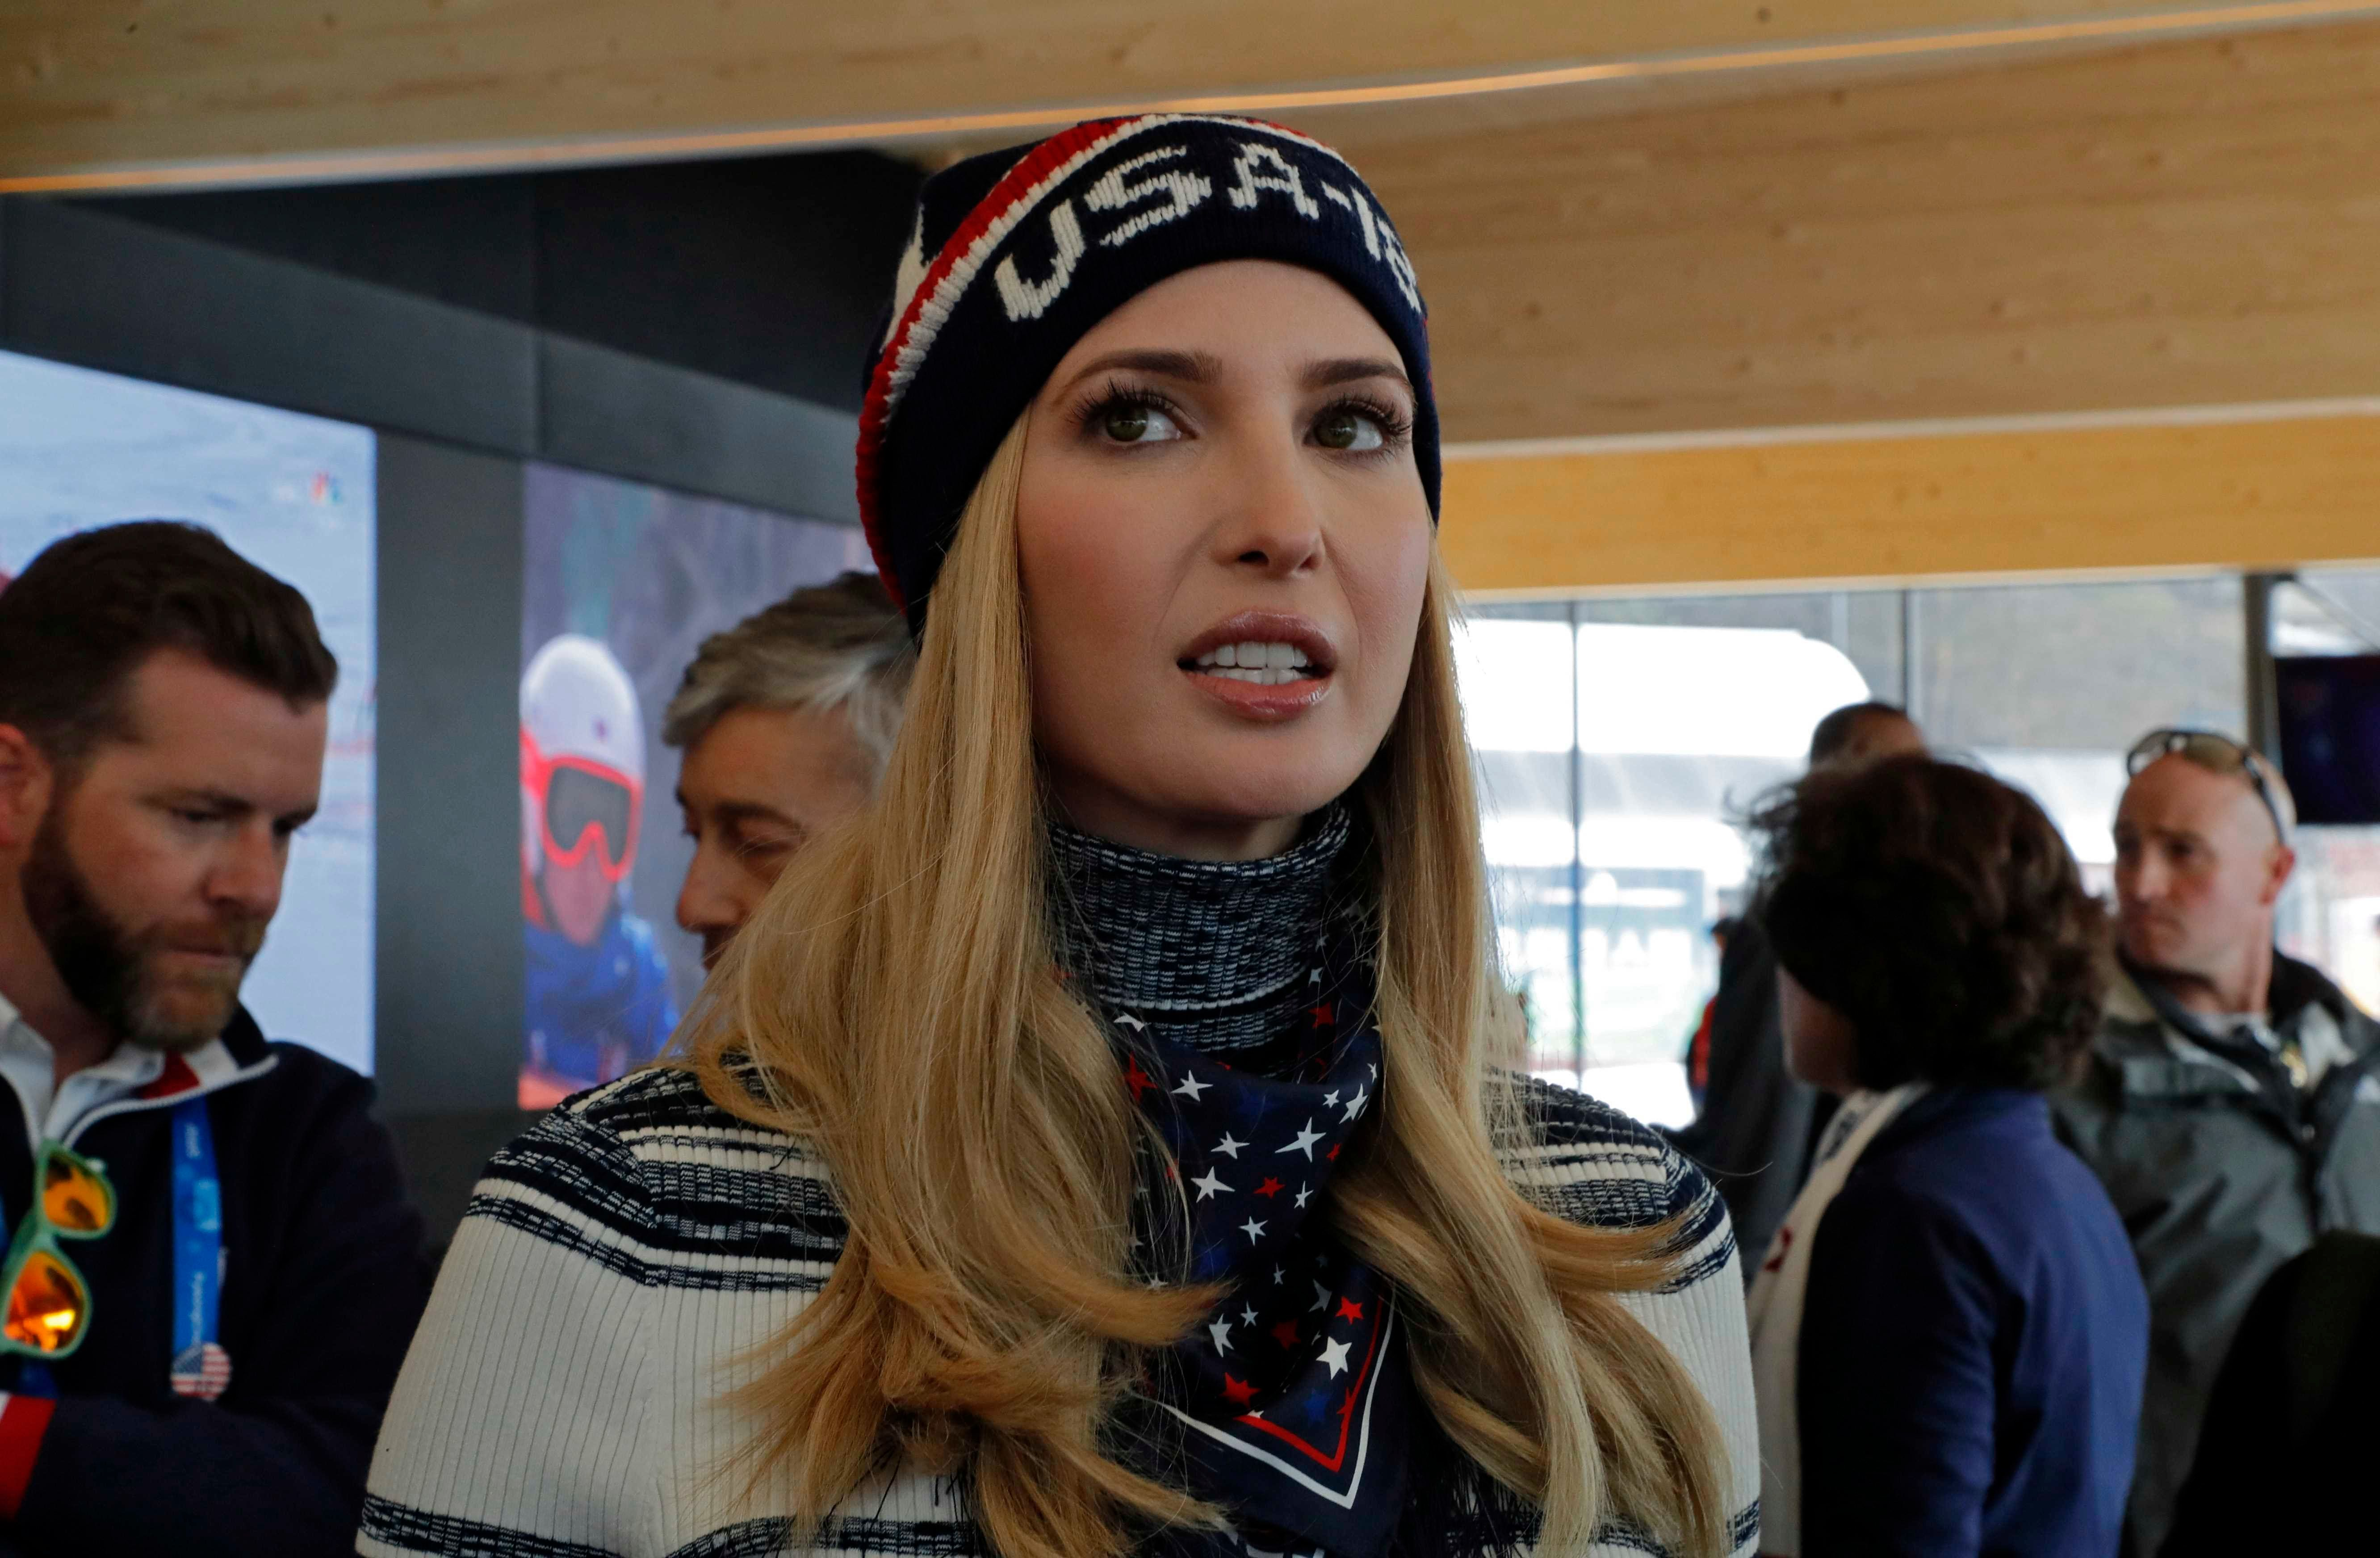 US President Donald Trump's daughter and senior White House adviser Ivanka Trump arrives to meet with former US bobsledder Garrett Hines (R) at the USA's house in pyeongchang on February 24, 2018. / AFP PHOTO / POOL / ERIC GAILLARD        (Photo credit should read ERIC GAILLARD/AFP/Getty Images)